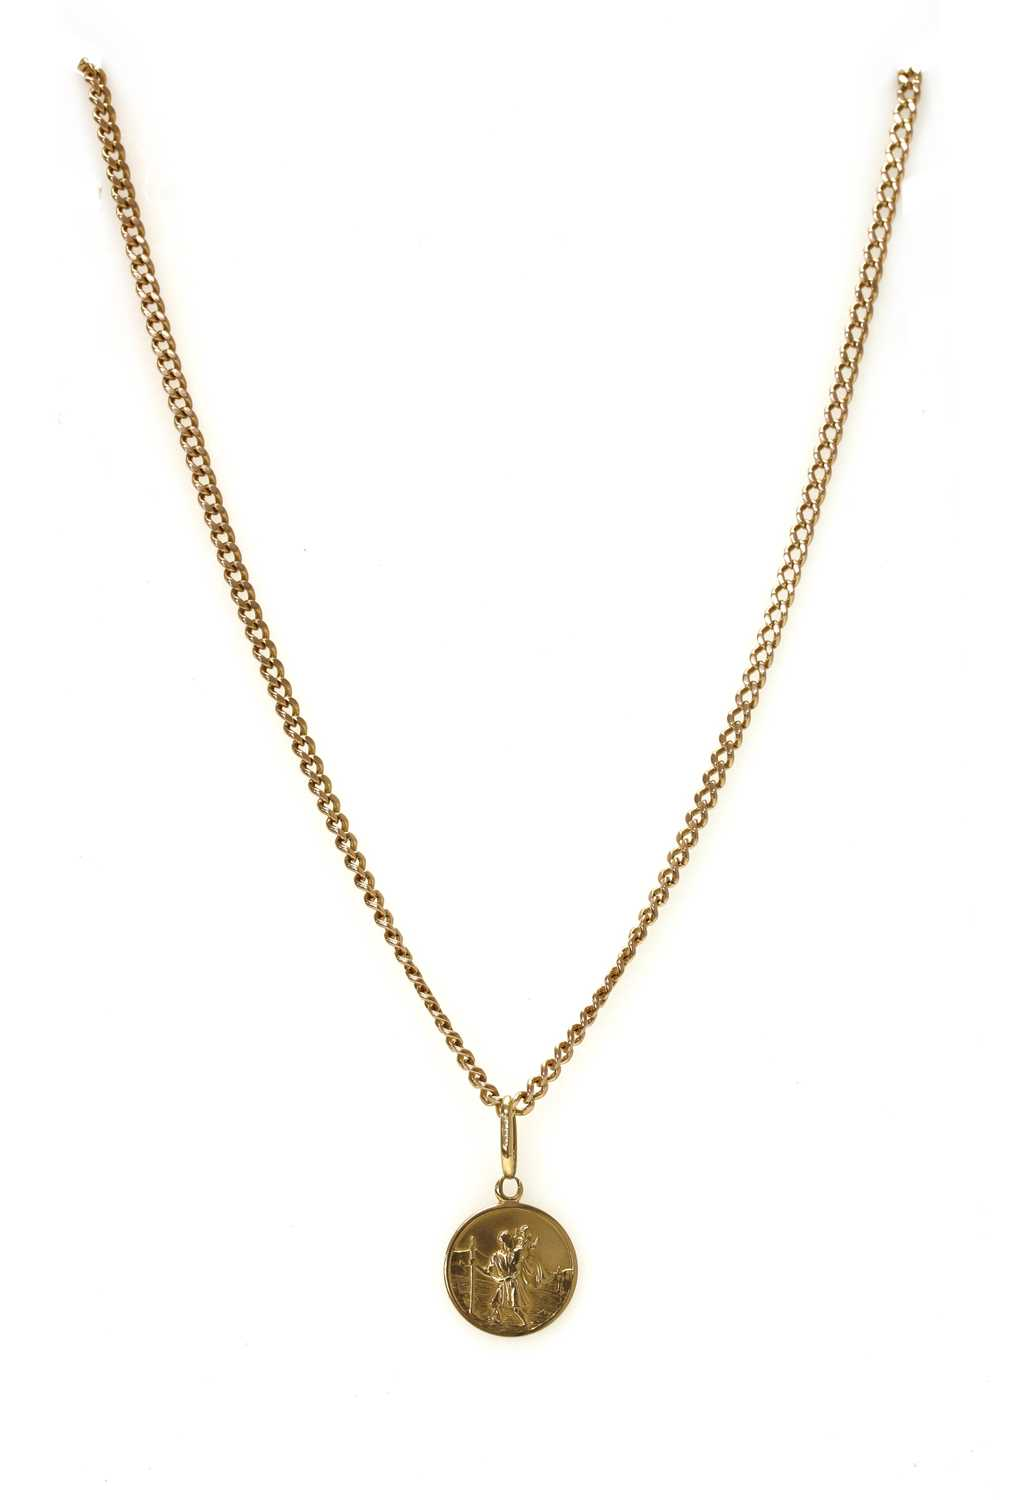 A 9ct gold St. Christopher pendant,